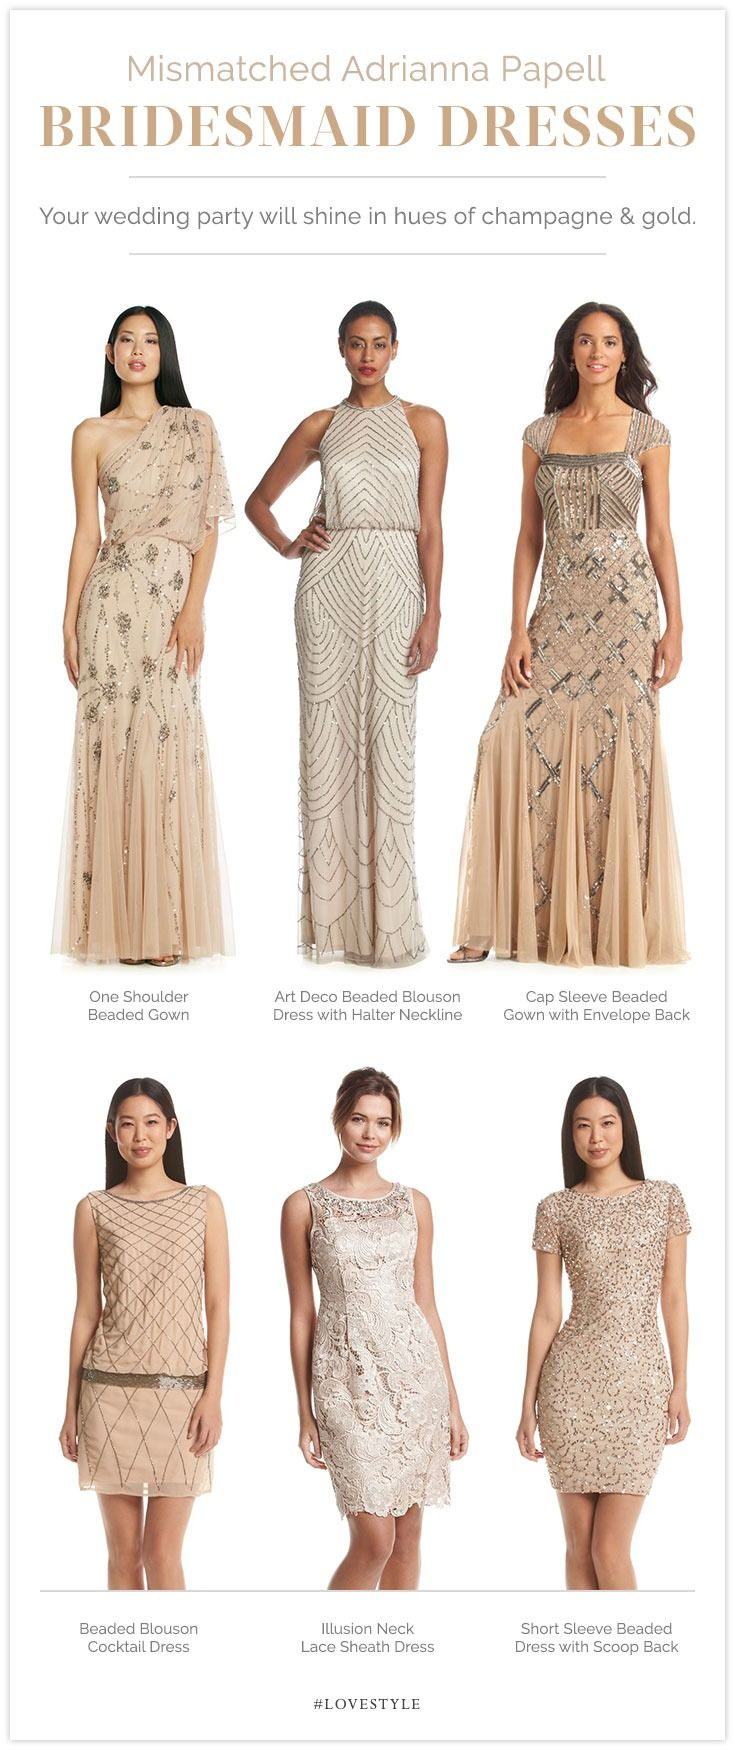 Tips from a bride on how to pull off the mismatched bridesmaid dress trend, featuring her favorite Adrianna Papell frocks.